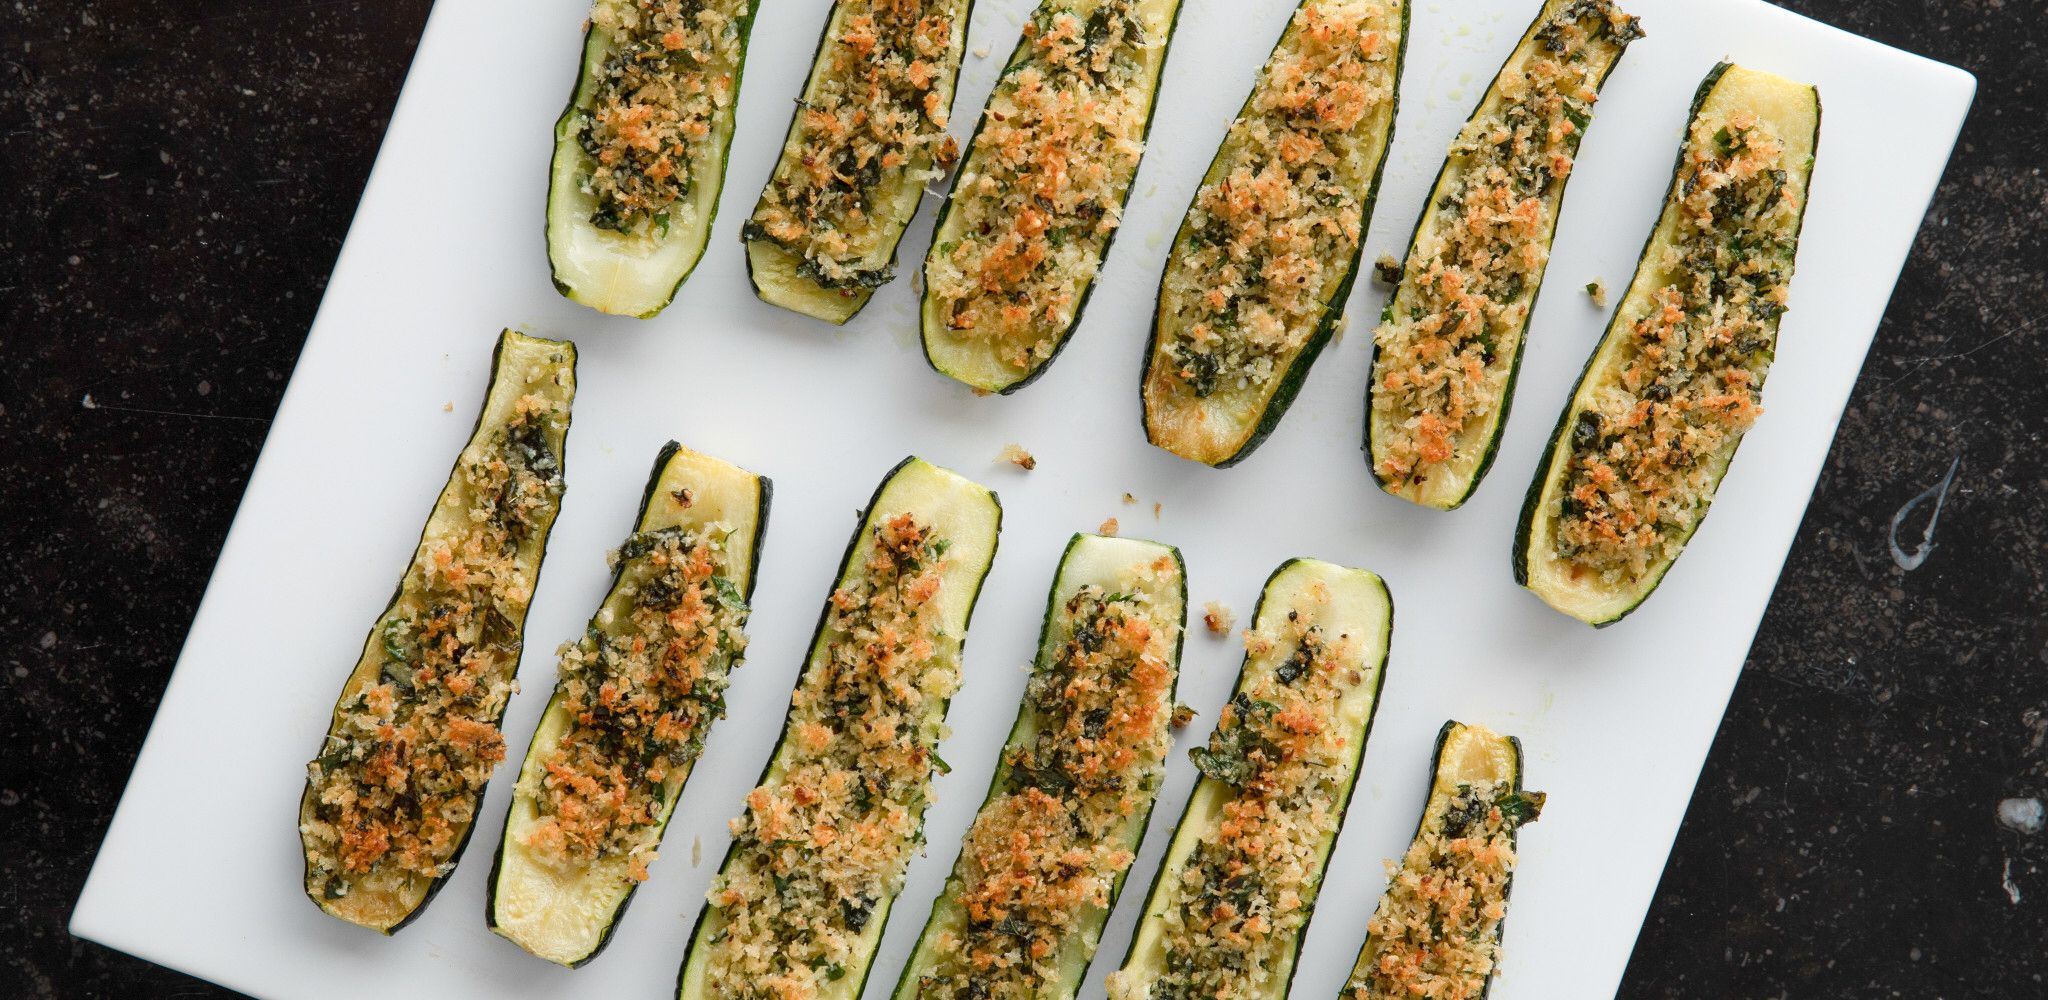 parmesan roasted zucchini  recipe  parmesan roasted